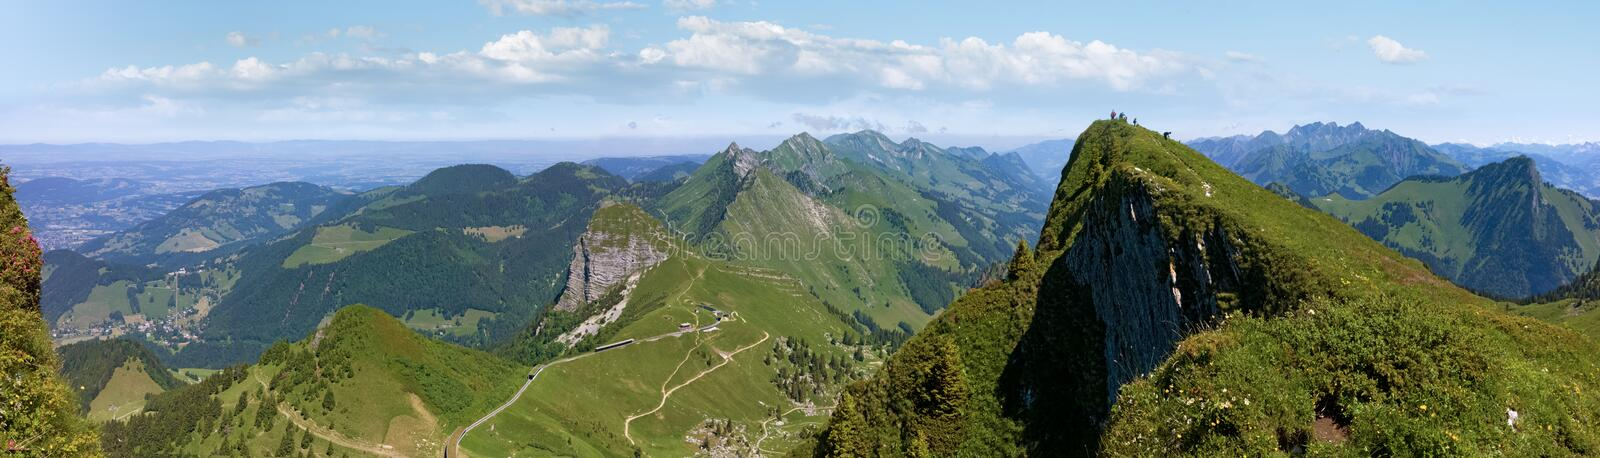 He Rochers de Naye are a mountain of the Swiss Alps, overlooking Lake Geneva. The Rochers de Naye French, lit. `rocks of Naye`; 2,042 metres 6,699 ft are a stock images